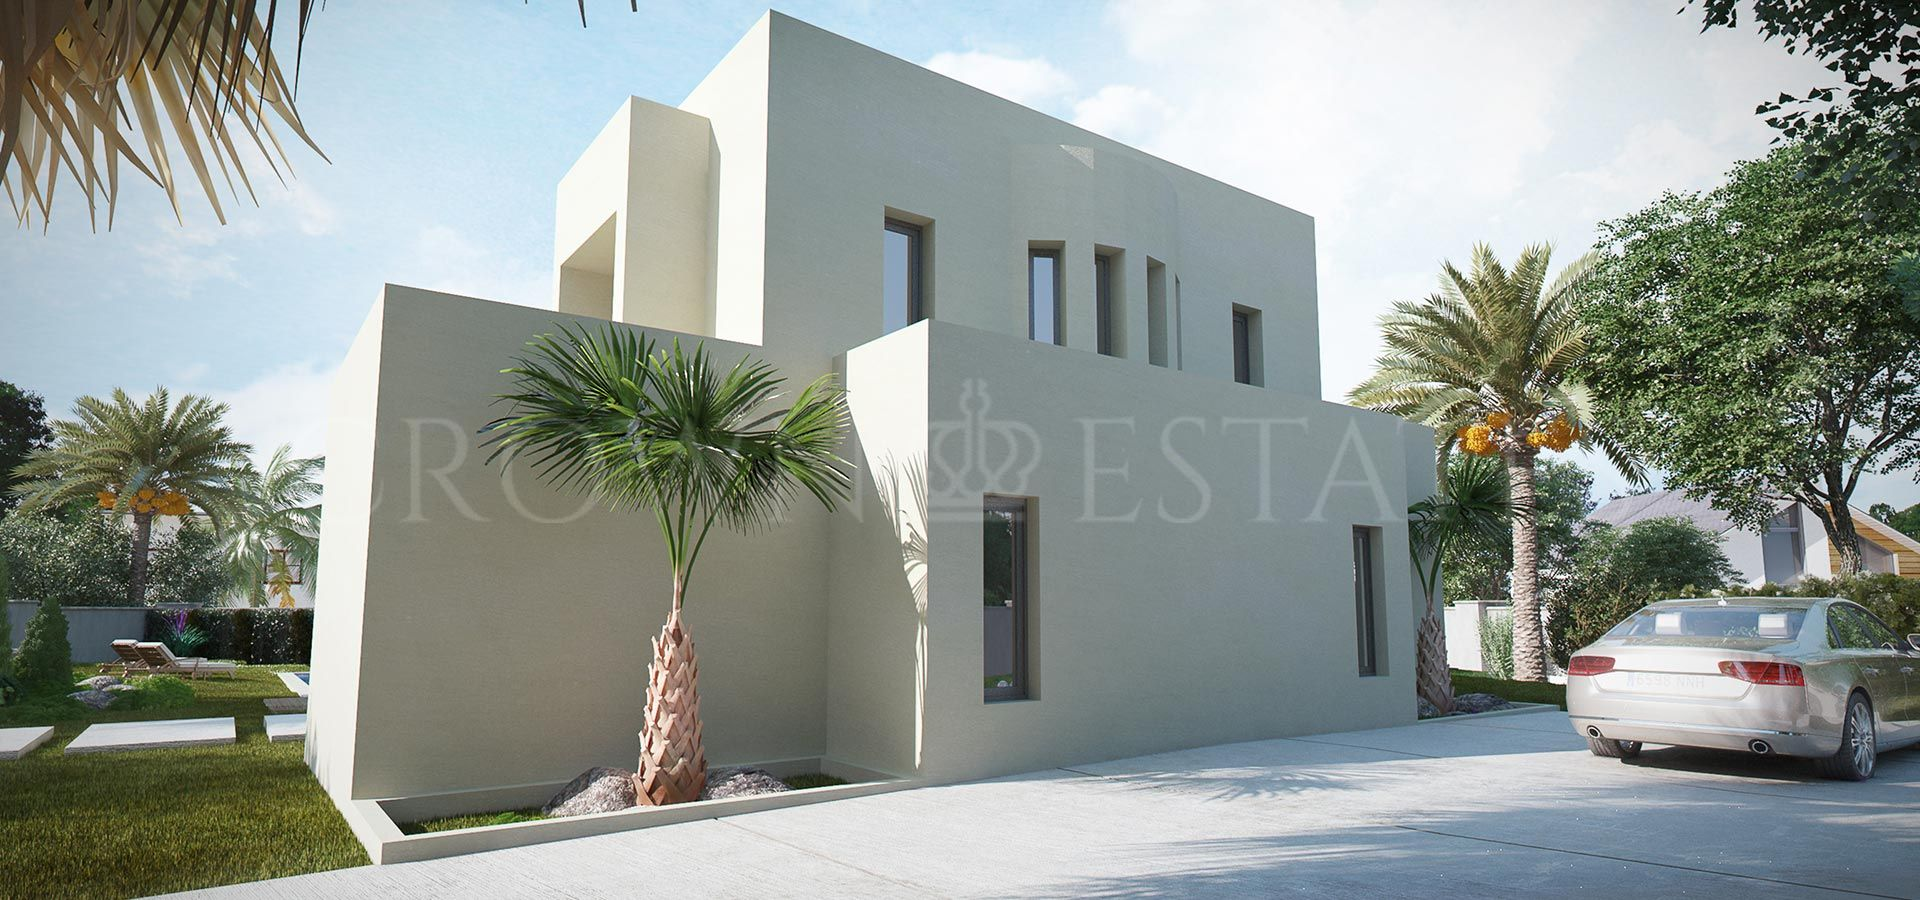 Villa for sale in Mirador del Paraiso, Benahavis